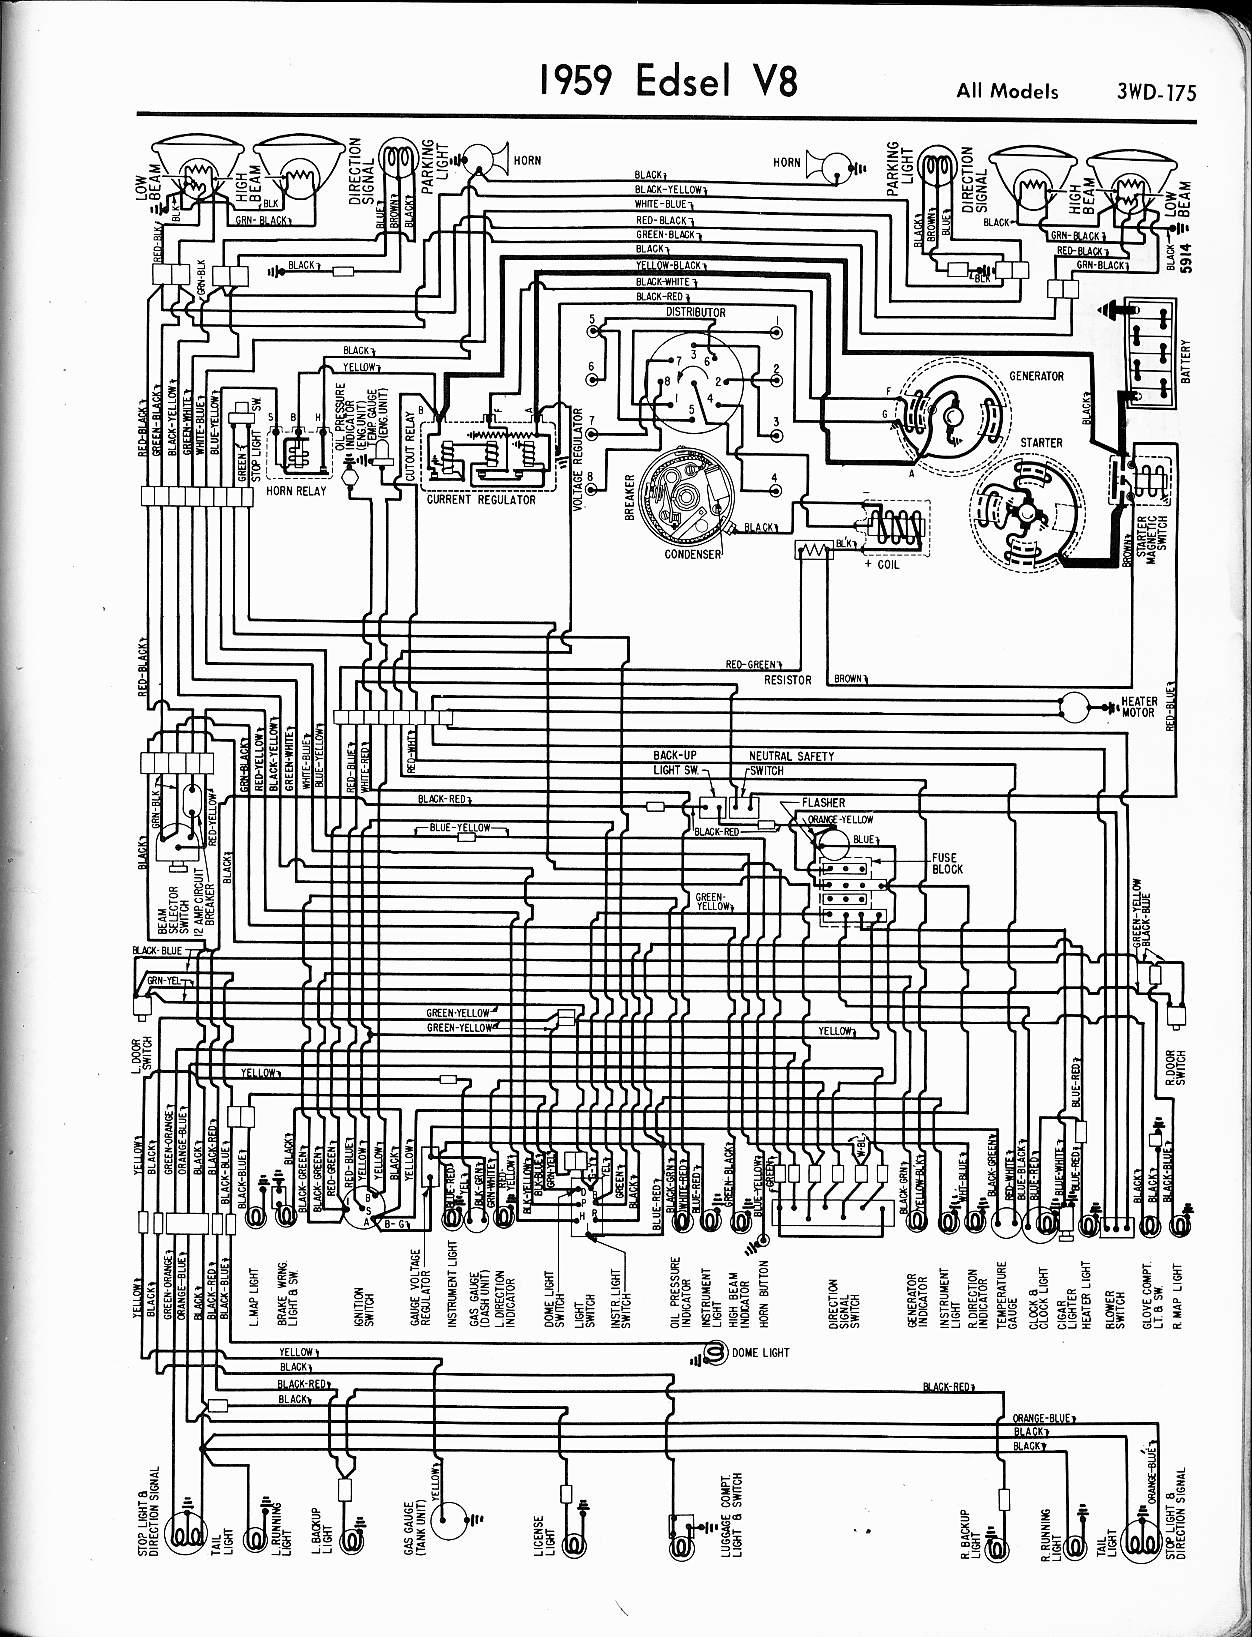 1958 edsel wiring diagram  1958  free engine image for user manual download 1958 Ford Headlight Switch Wiring Diagram 56 Ford Headlight Switch Wiring Diagram